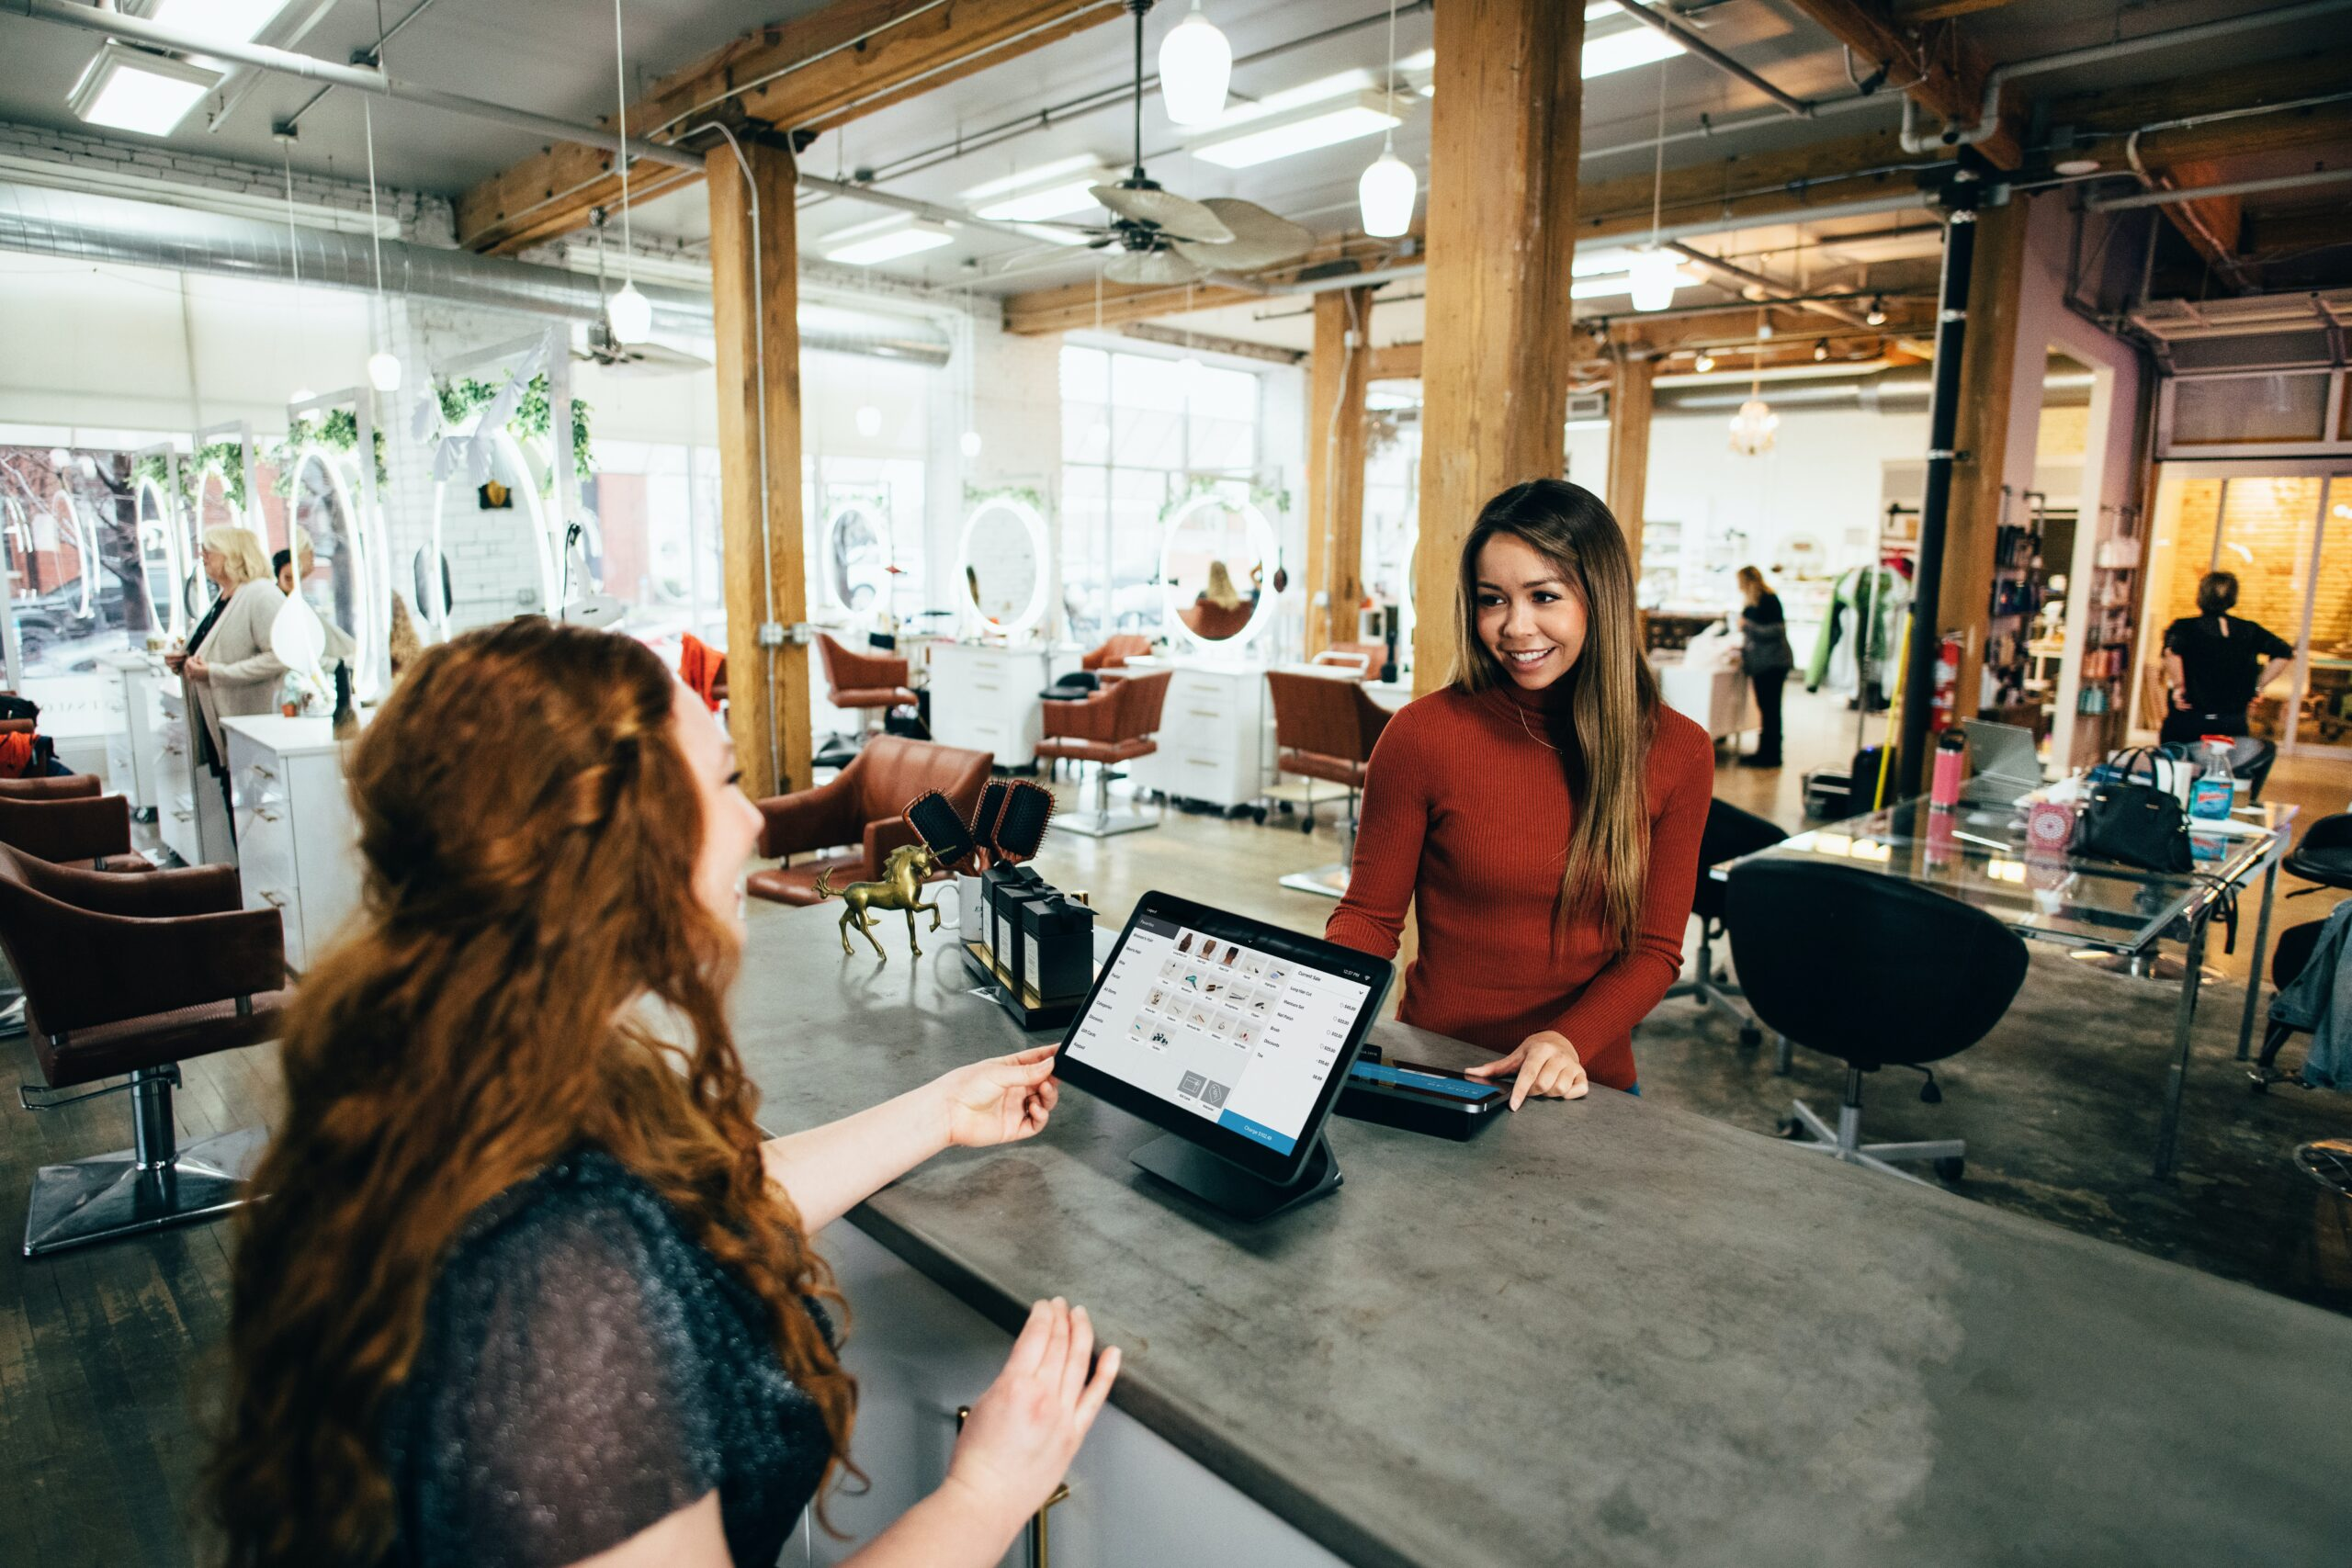 Small Business Image of Women in Store